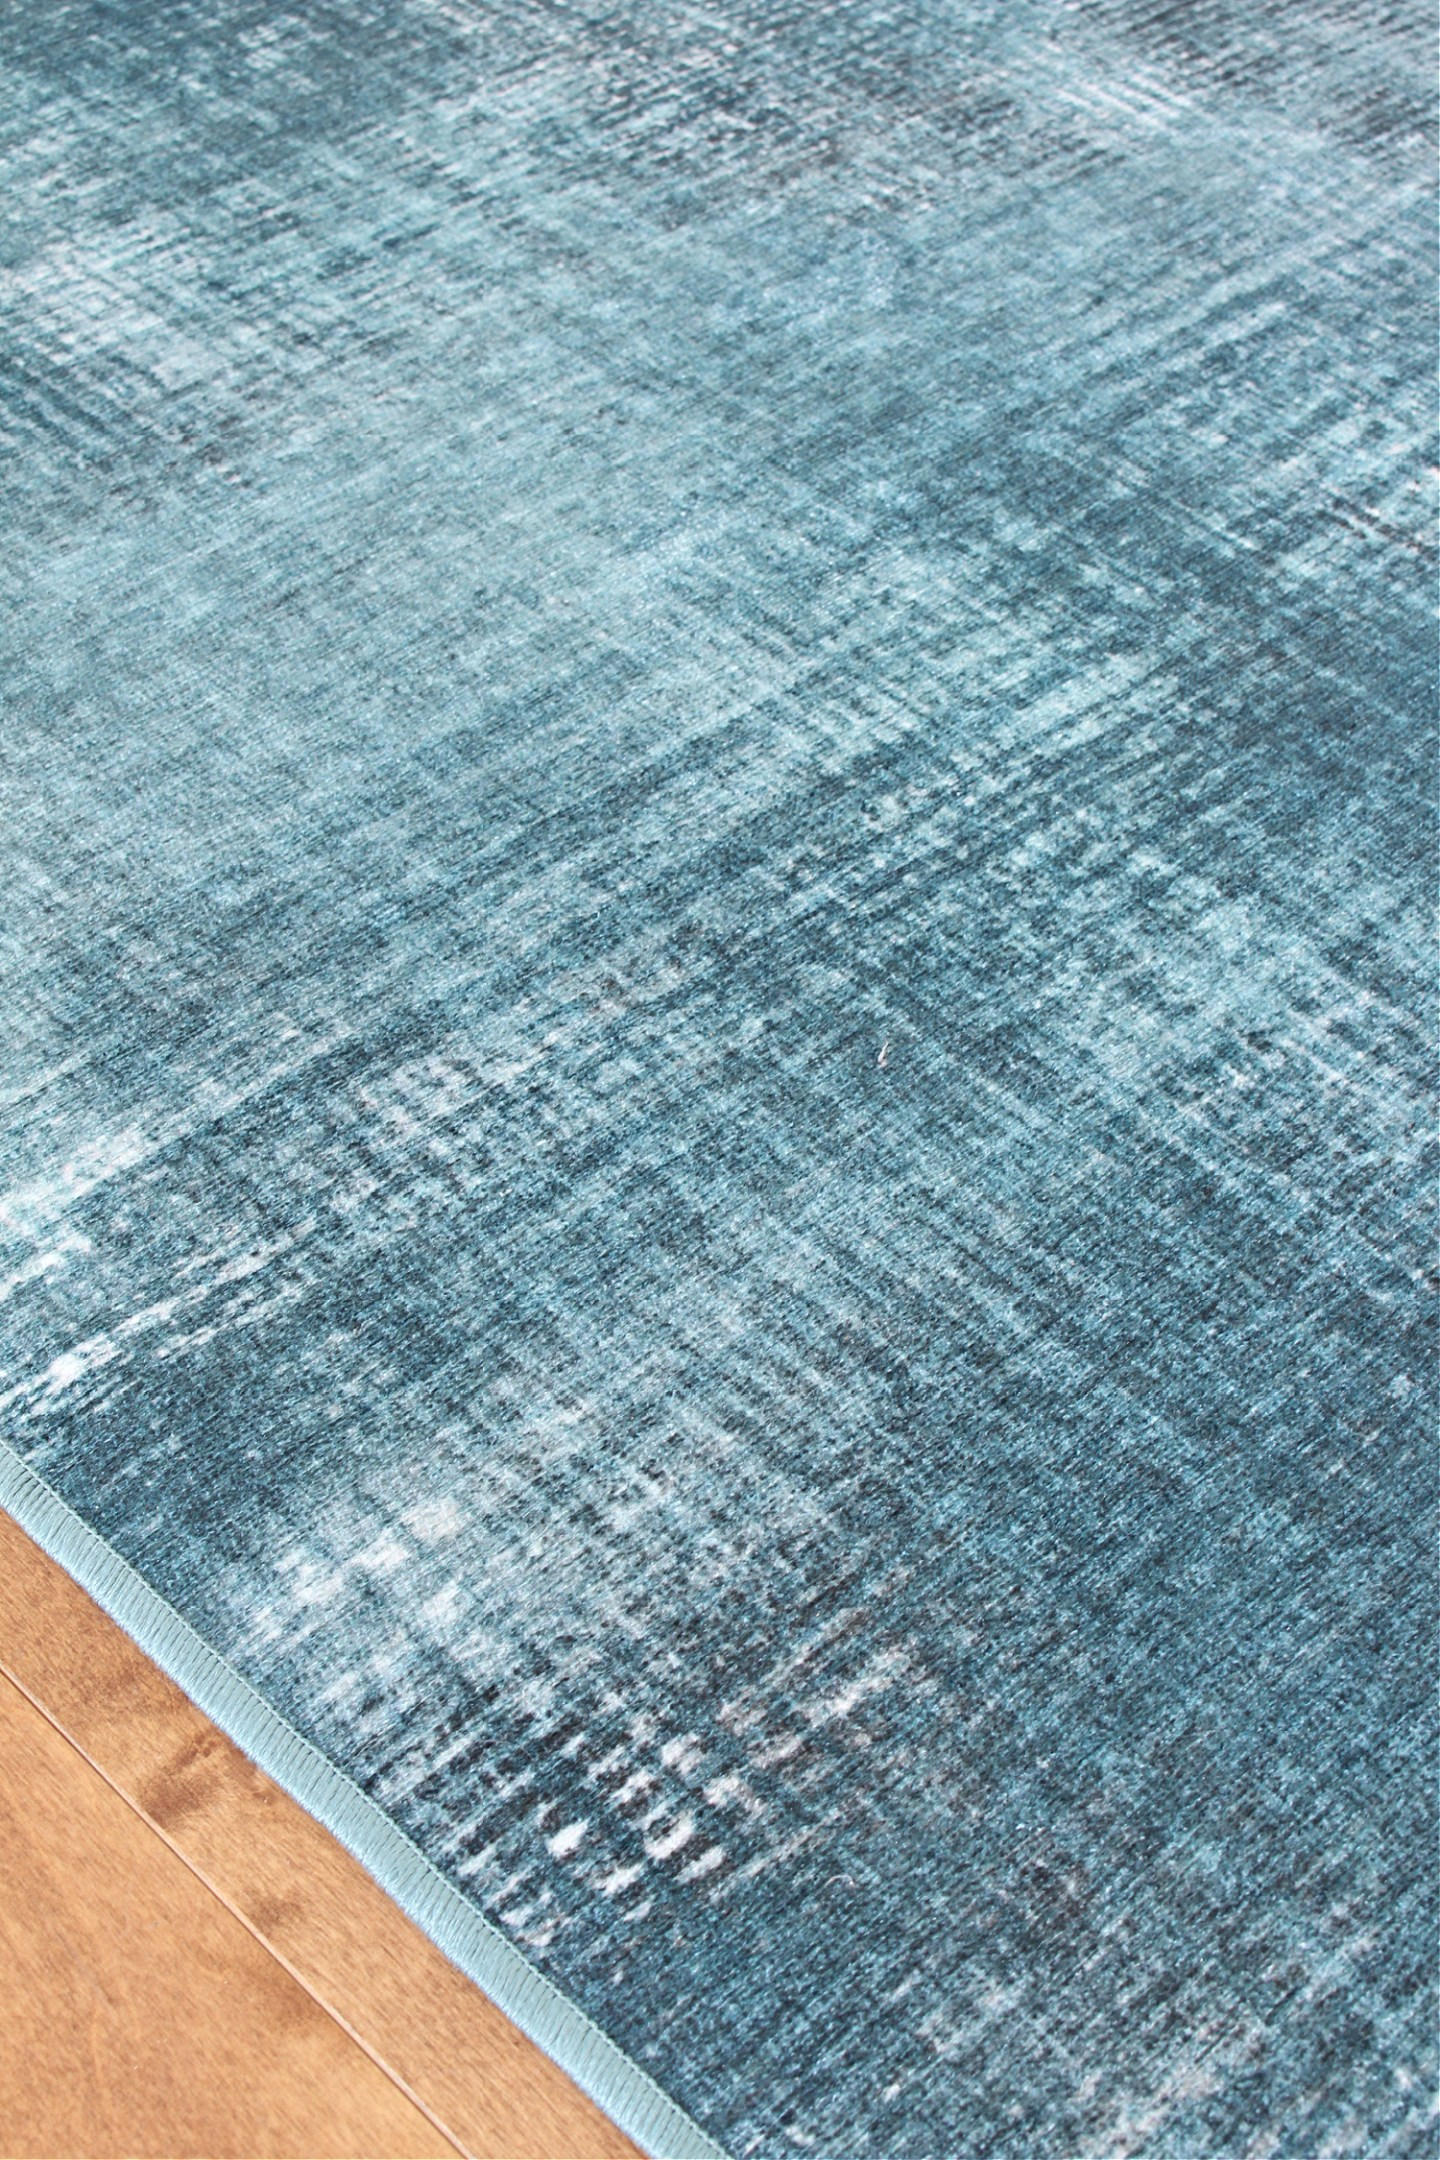 Are Ruggable Rugs Really Washable? YES!